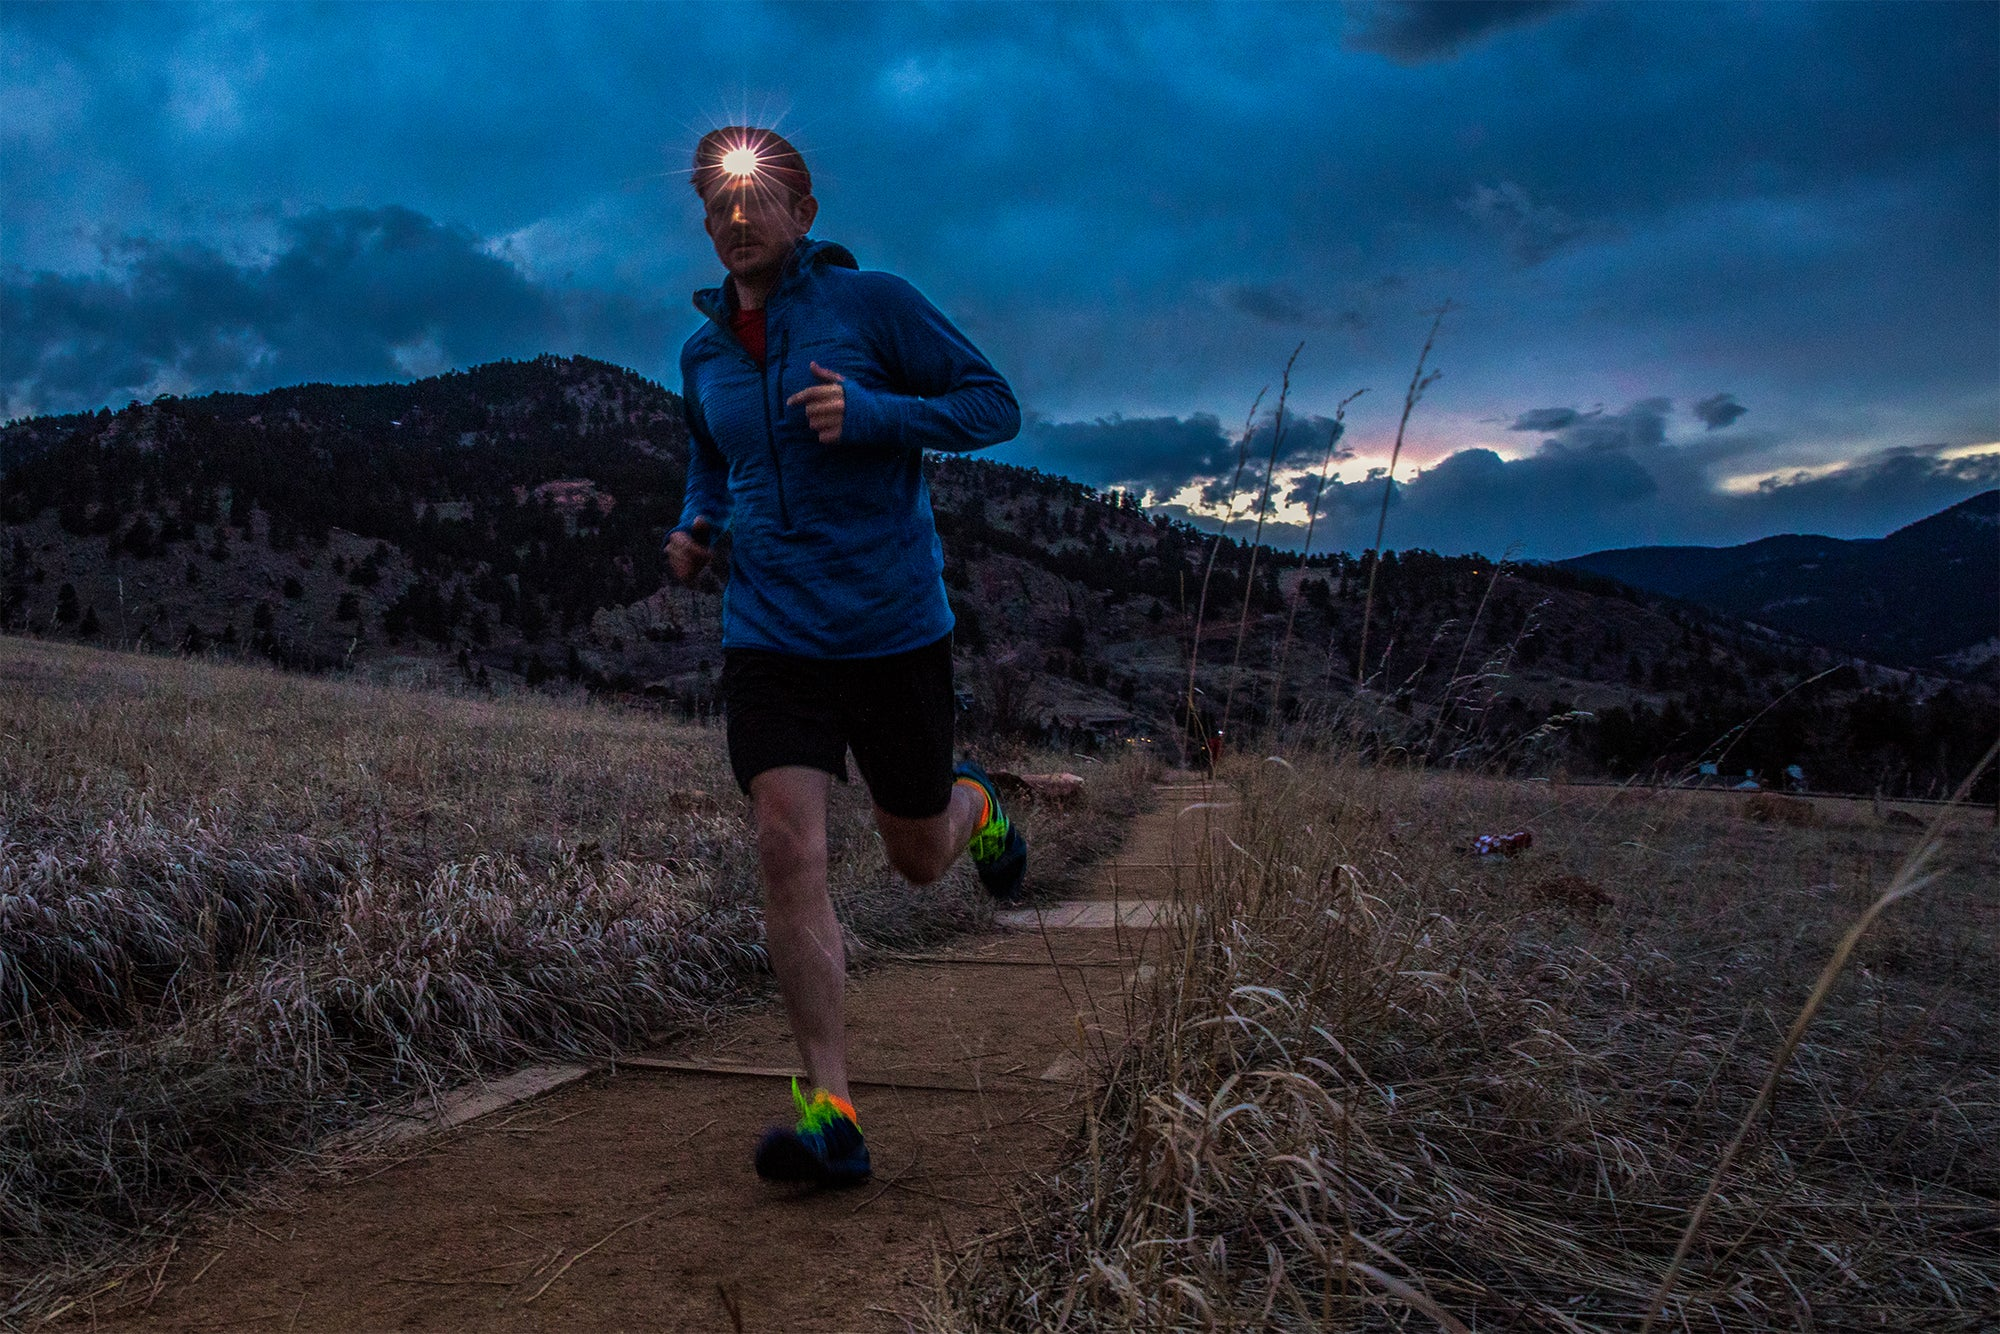 What to Use Instead of a Headlamp to Light Your Run